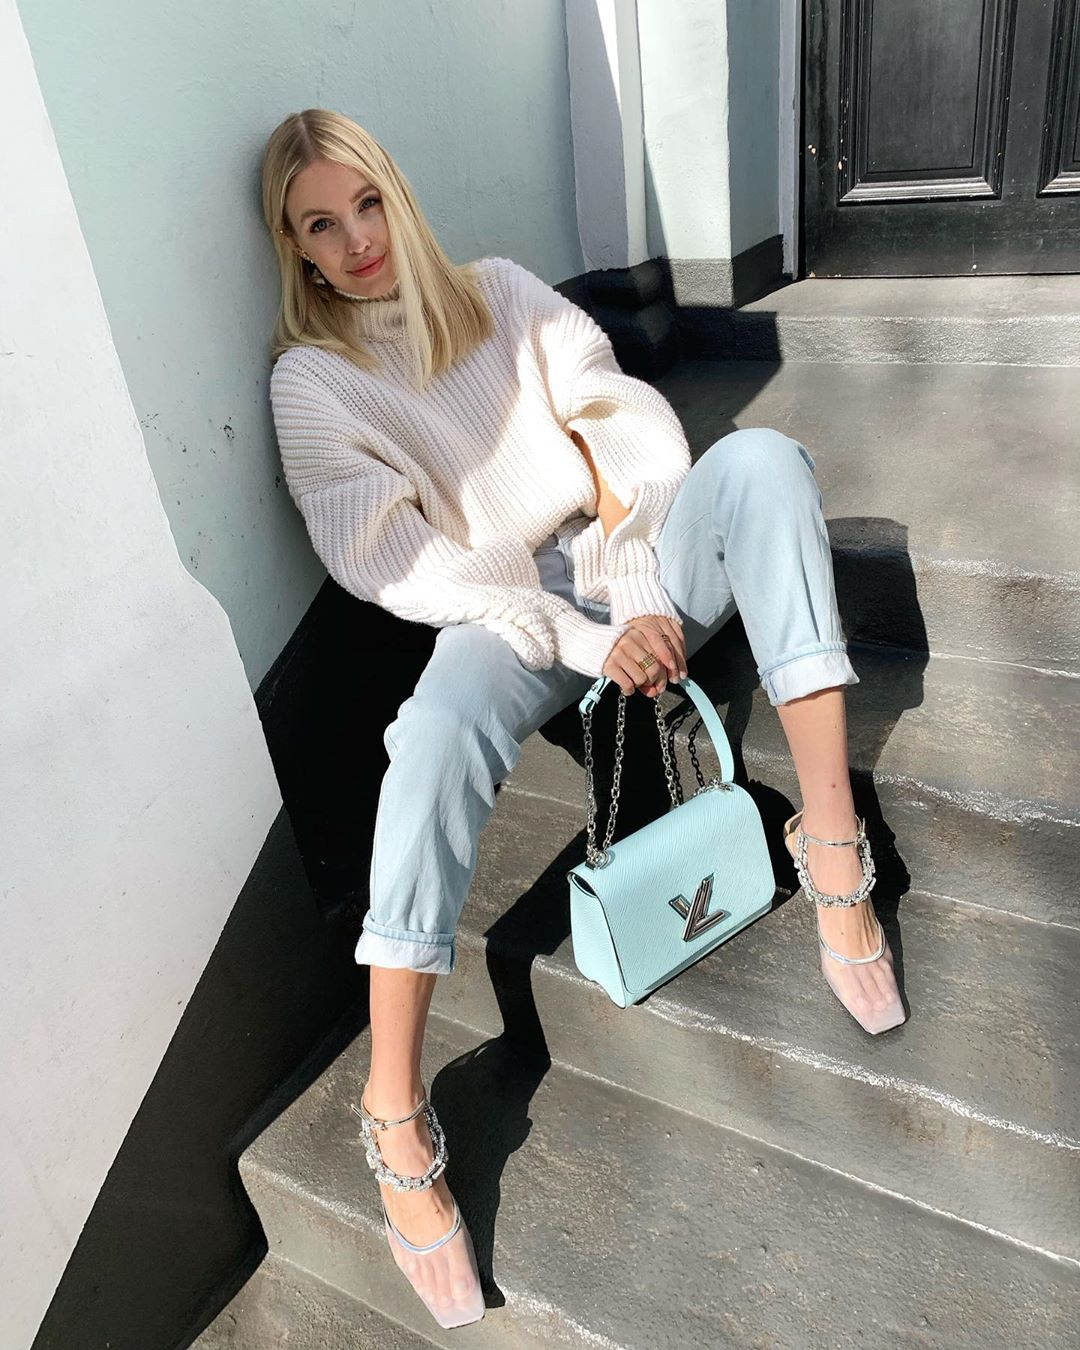 Cream sweater and denim look for spring